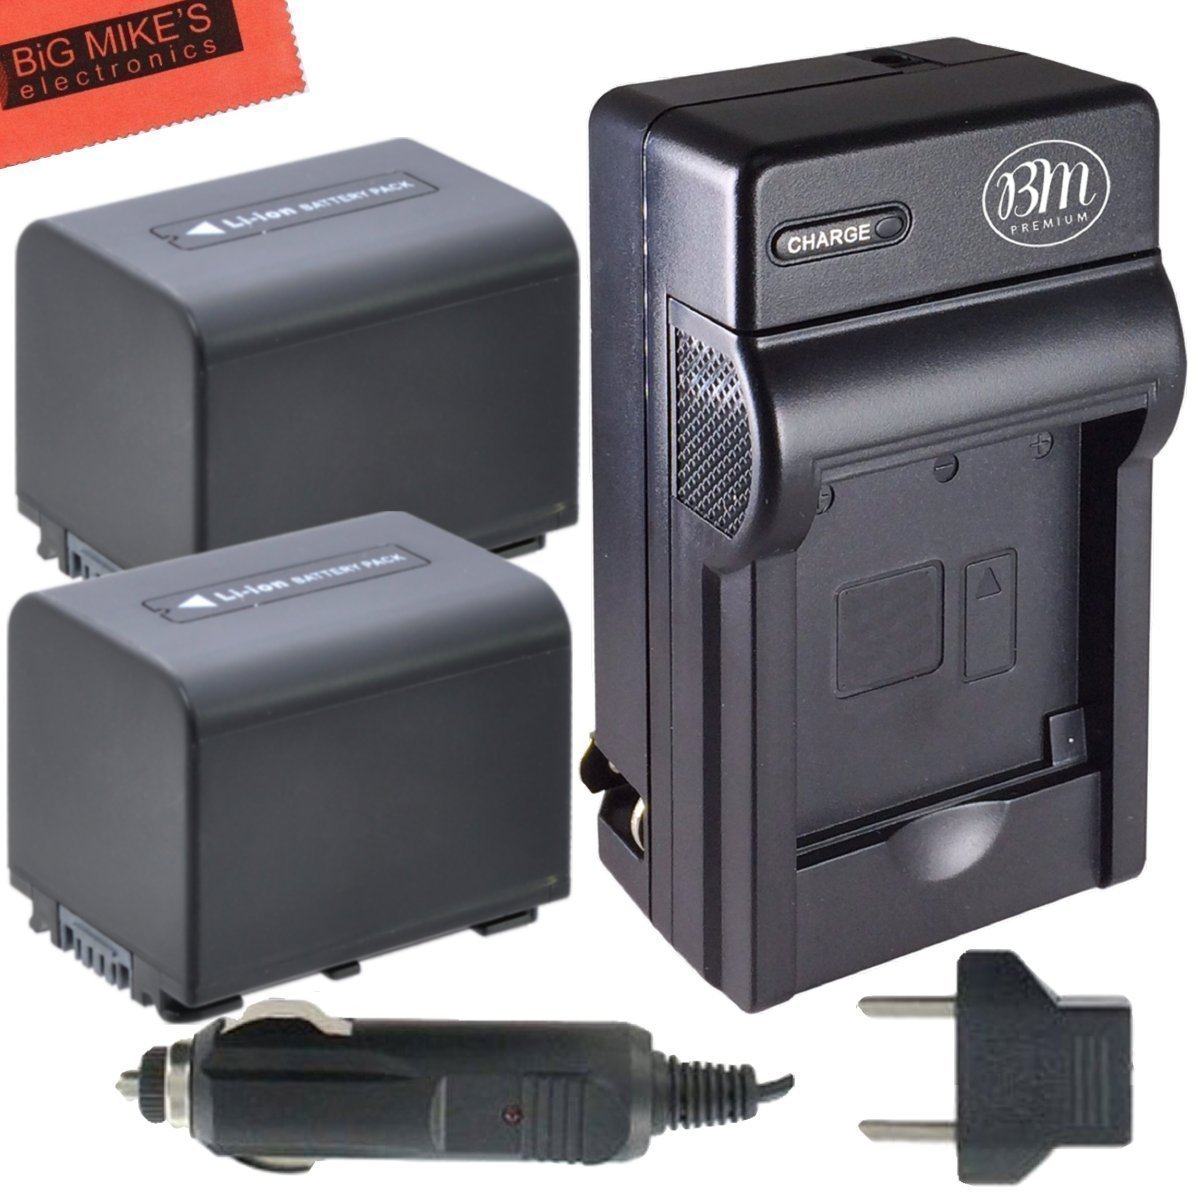 Pack of 2 NP-FV70 Batteries & Battery Charger Kit for Sony NEX-VG10 NEX-VG20 NEX-VG30 NEX-VG900 HXR-MC50U Handycam Camcorder + More!! Big Mike' s npfv70